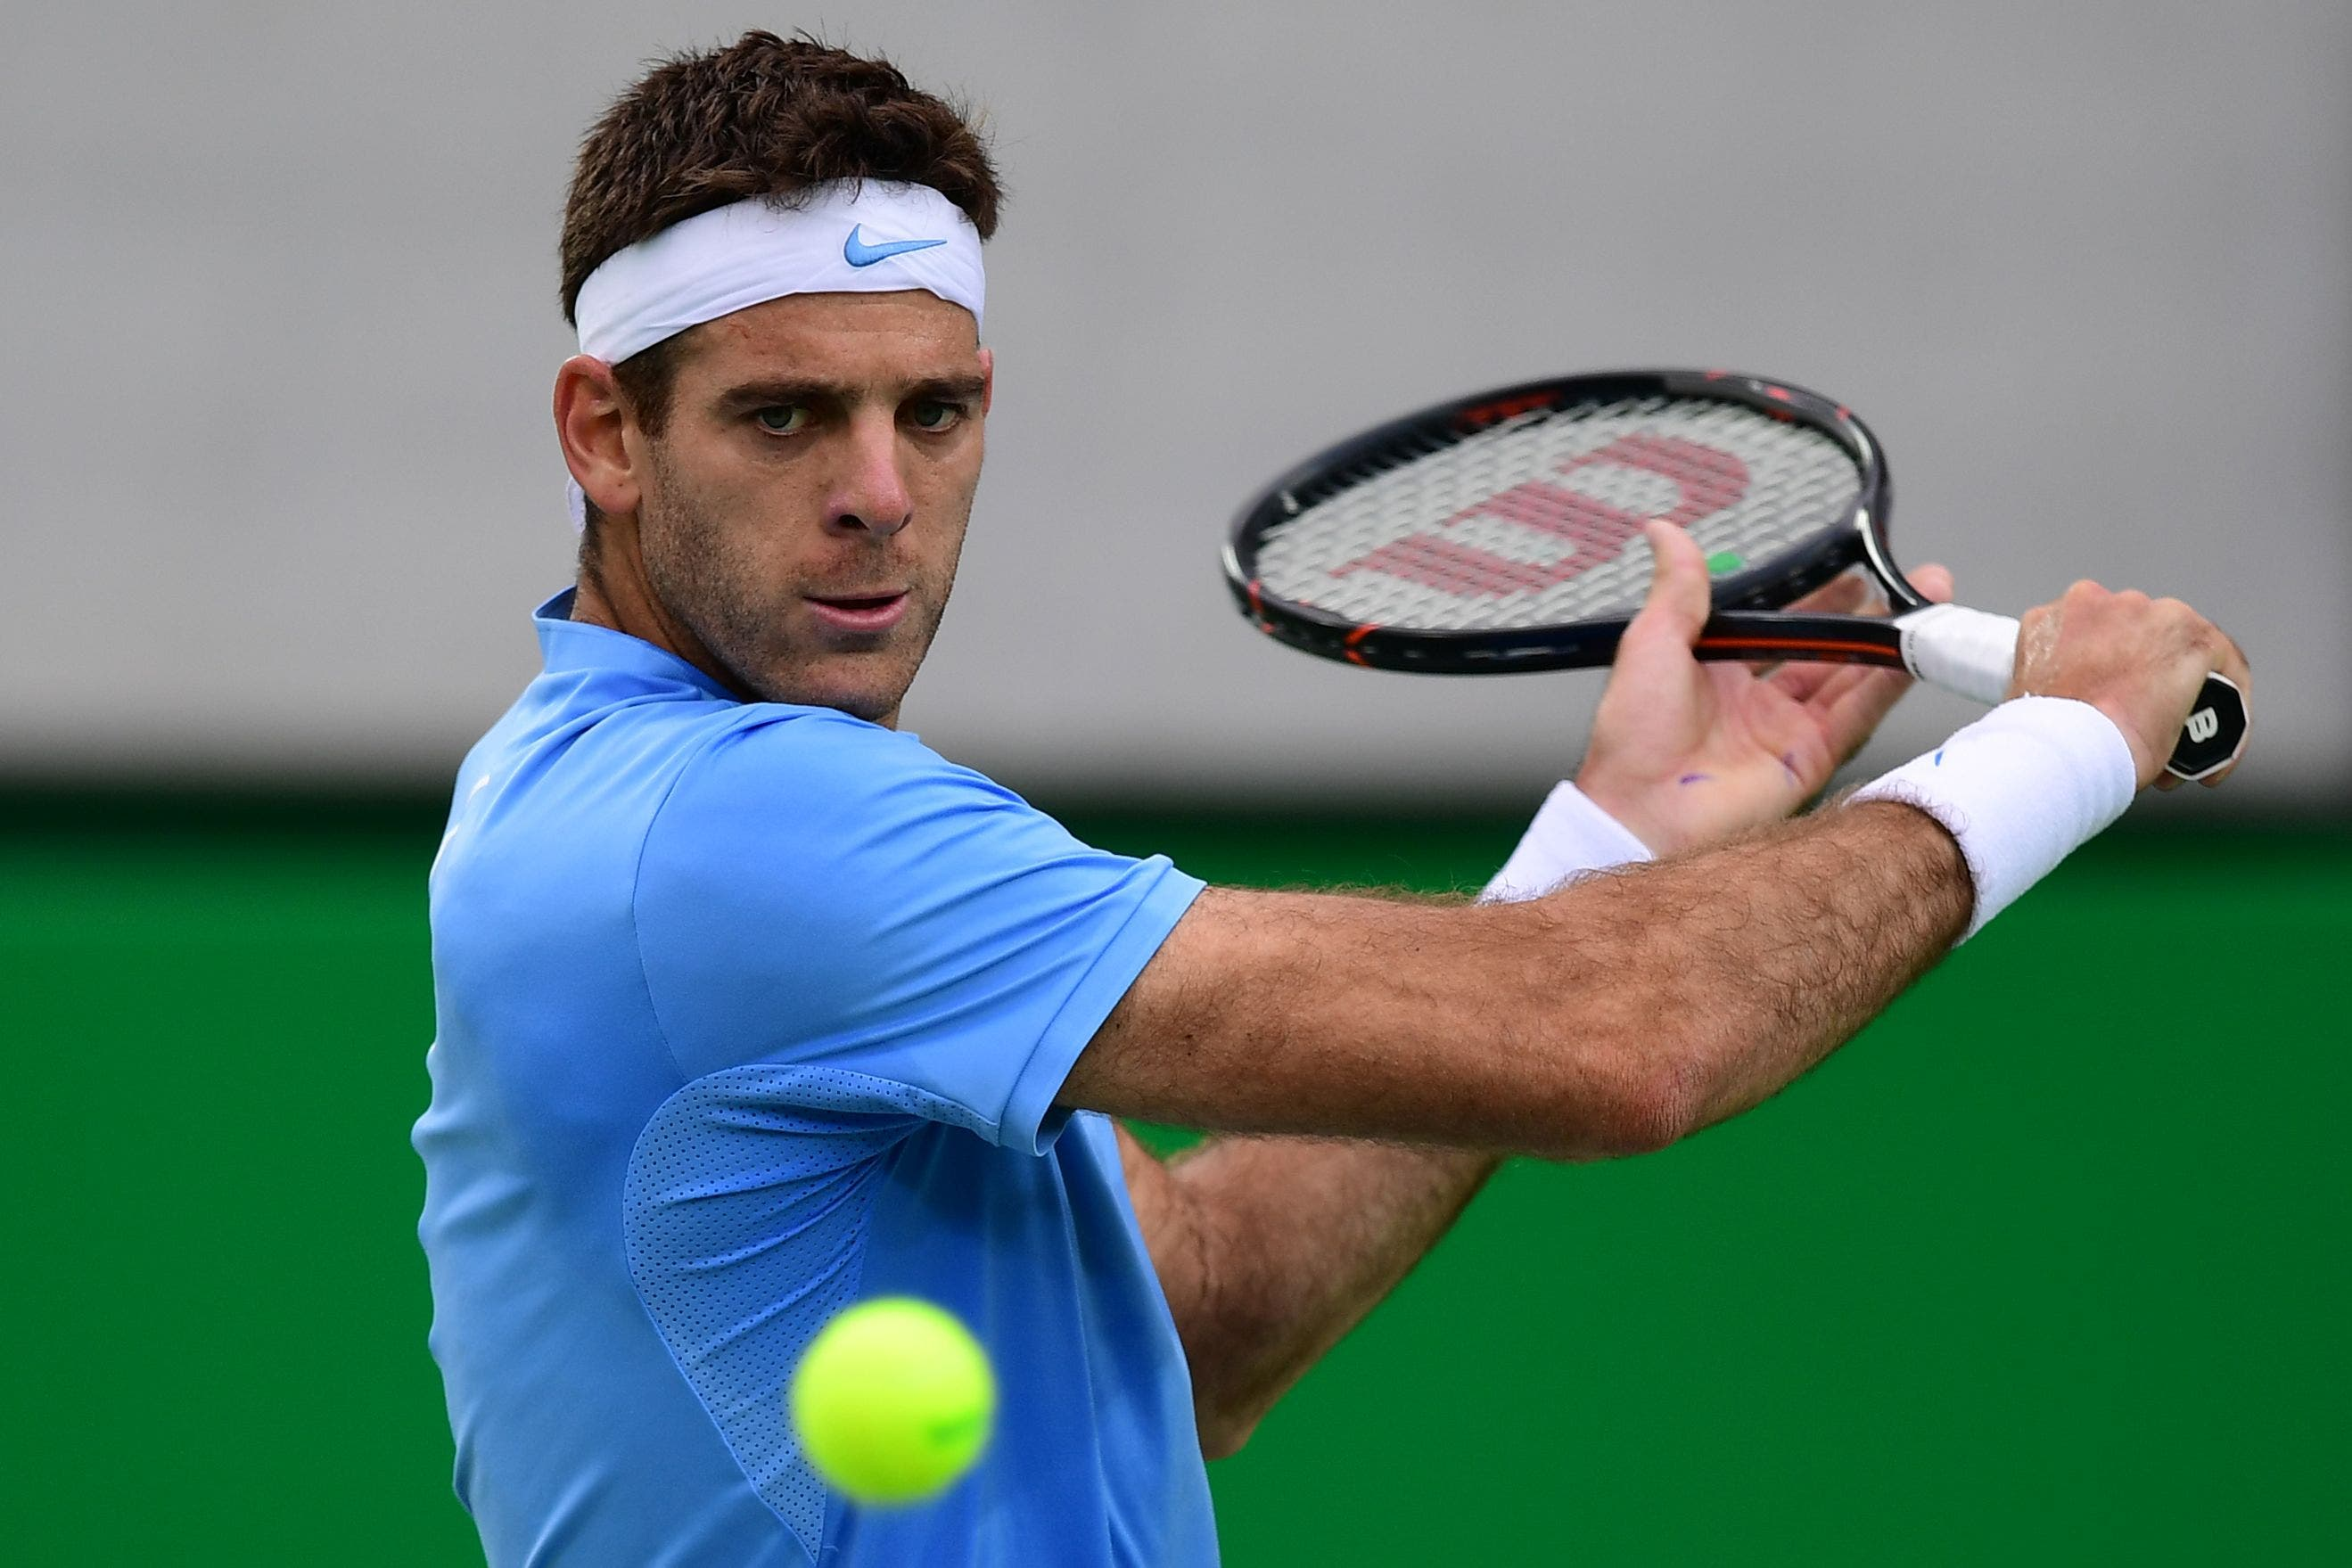 Argentina's Juan Martin Del Potro returns the ball to Portugal's Joao Sousa during their men's second round singles tennis match at the Olympic Tennis Centre of the Rio 2016 Olympic Games in Rio de Janeiro on August 8, 2016. / AFP / Martin BERNETTI